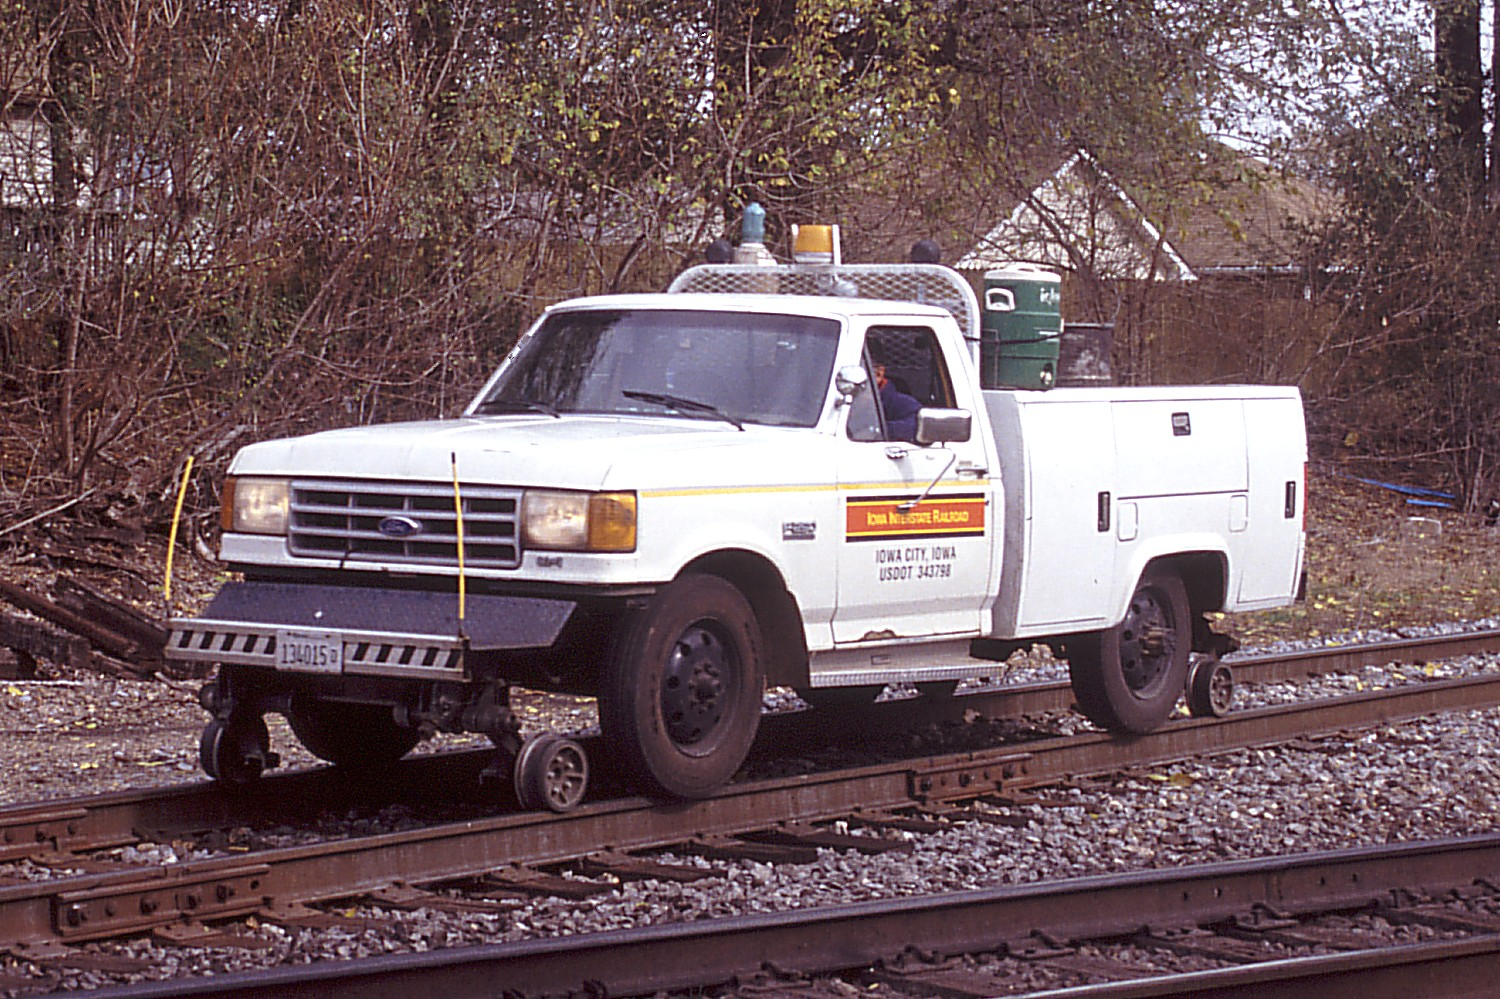 Ford F-250 hi-rail westbound at Colona, IL on 10/25/03.